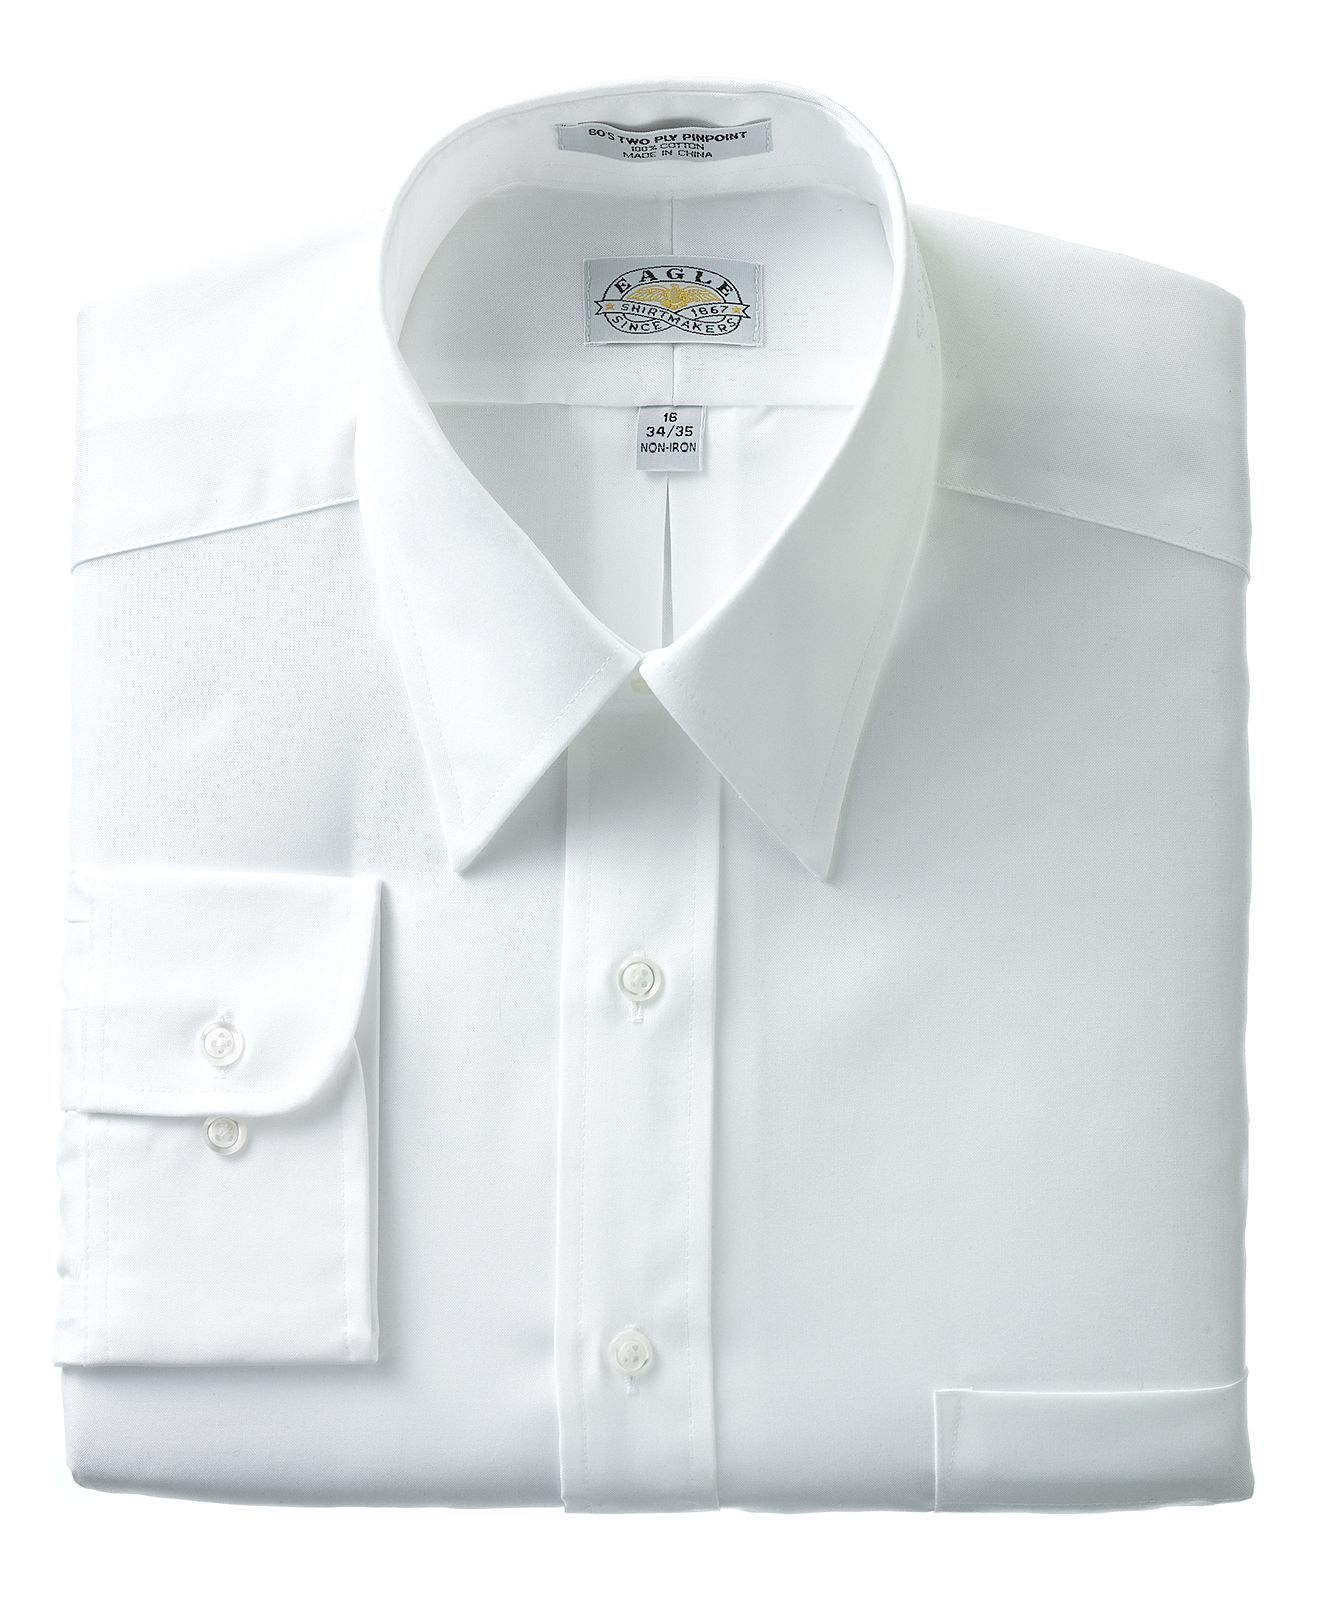 8ecc7fde8eb Eagle Dress Shirt, No-Iron Pinpoint - Mens Shirts - Macy's $34.75 ...